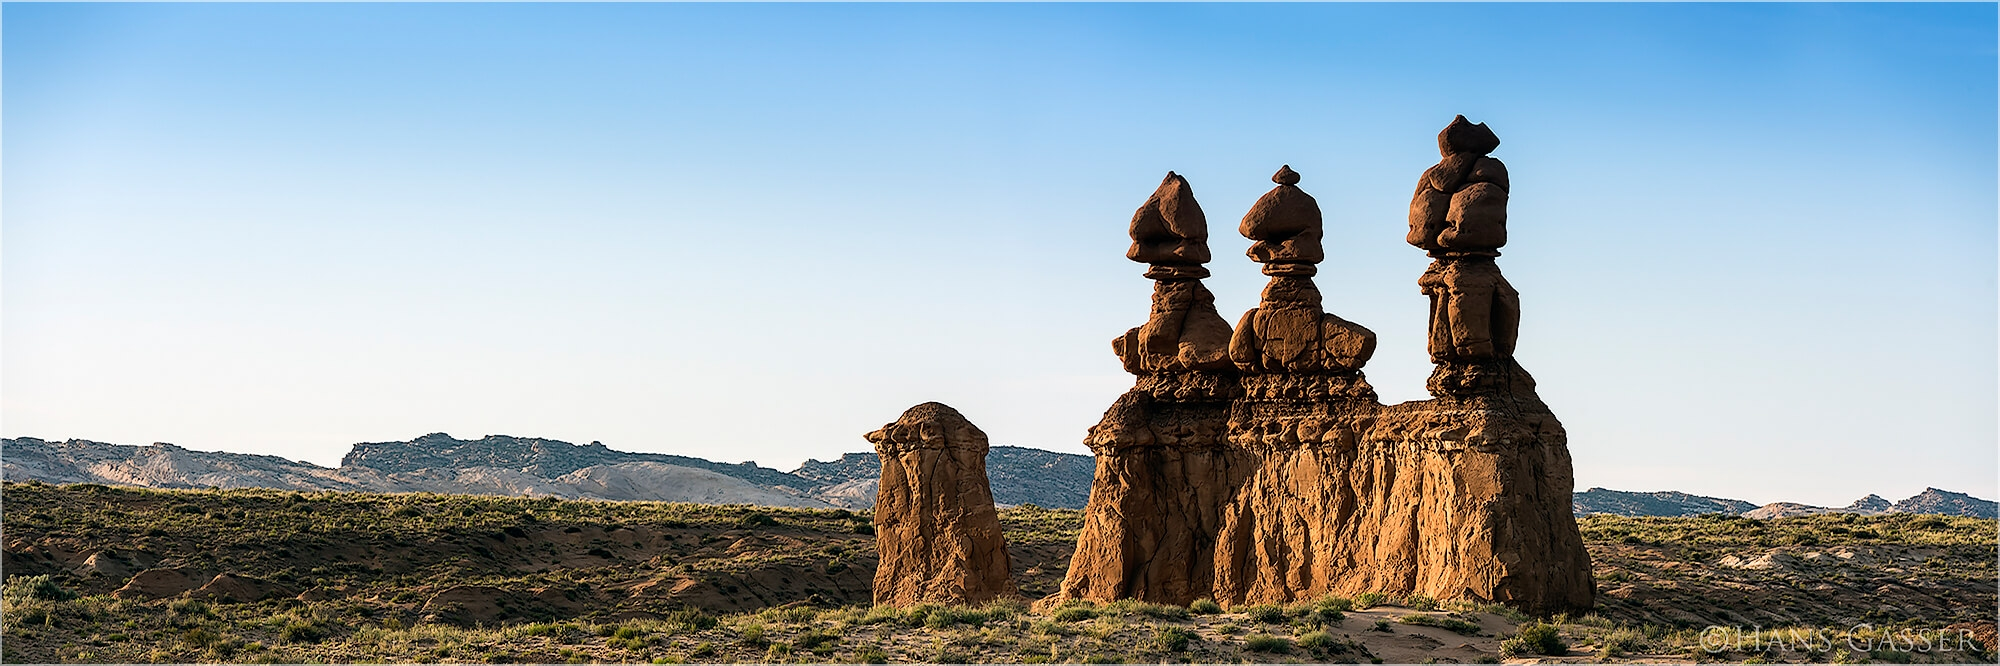 Panoramafoto Sandstein Figuren Goblin Valley Utah USA